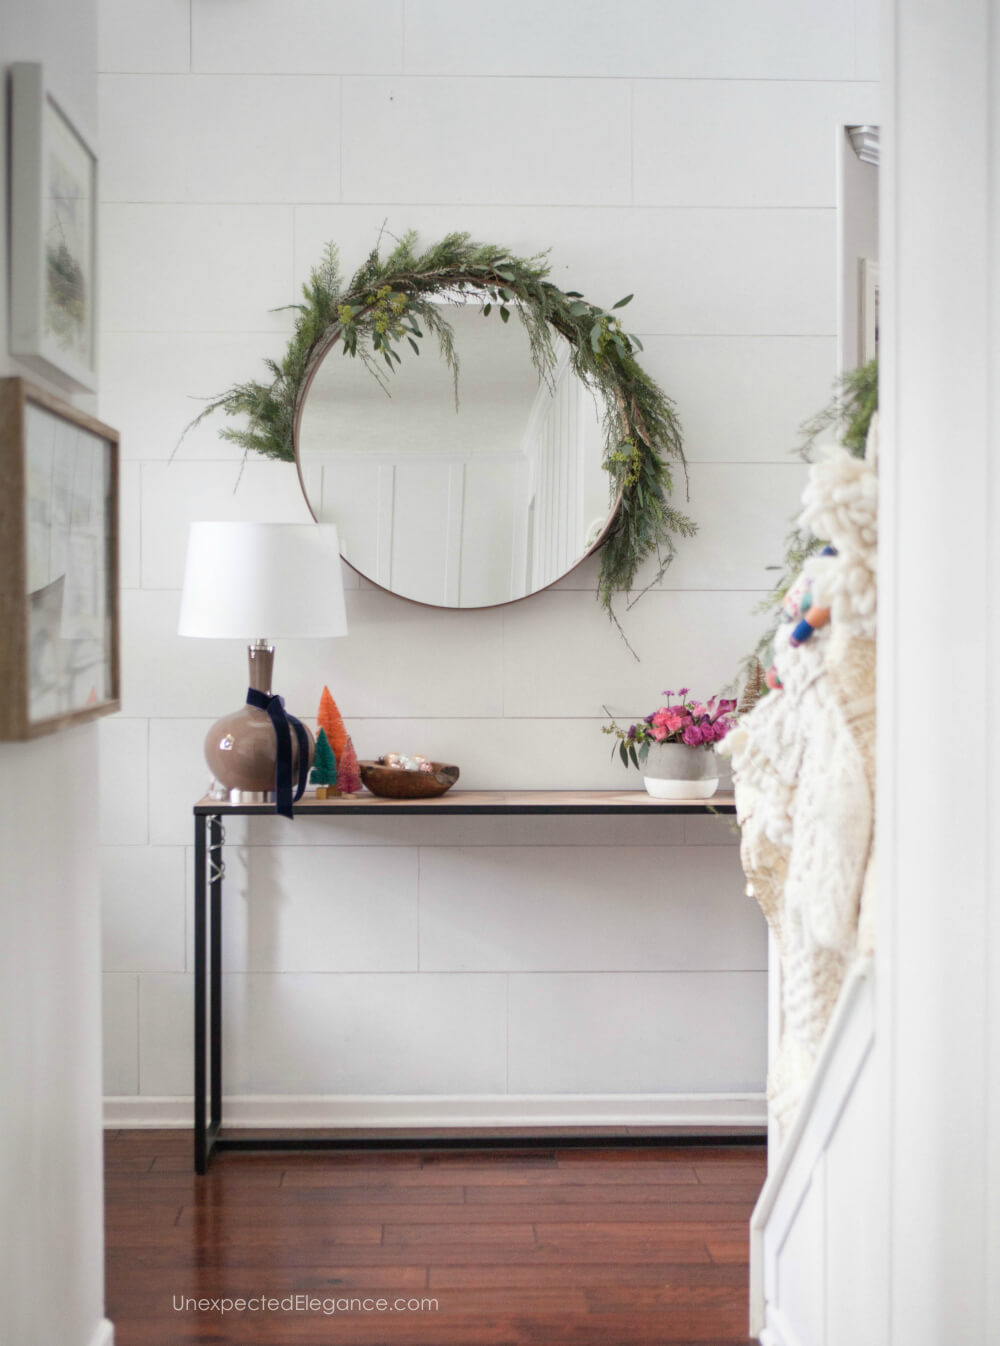 Get a few ways to deck the hallway this holiday season. Find out where to get items and how to put it all together! #holidaydecor #christmasdecor